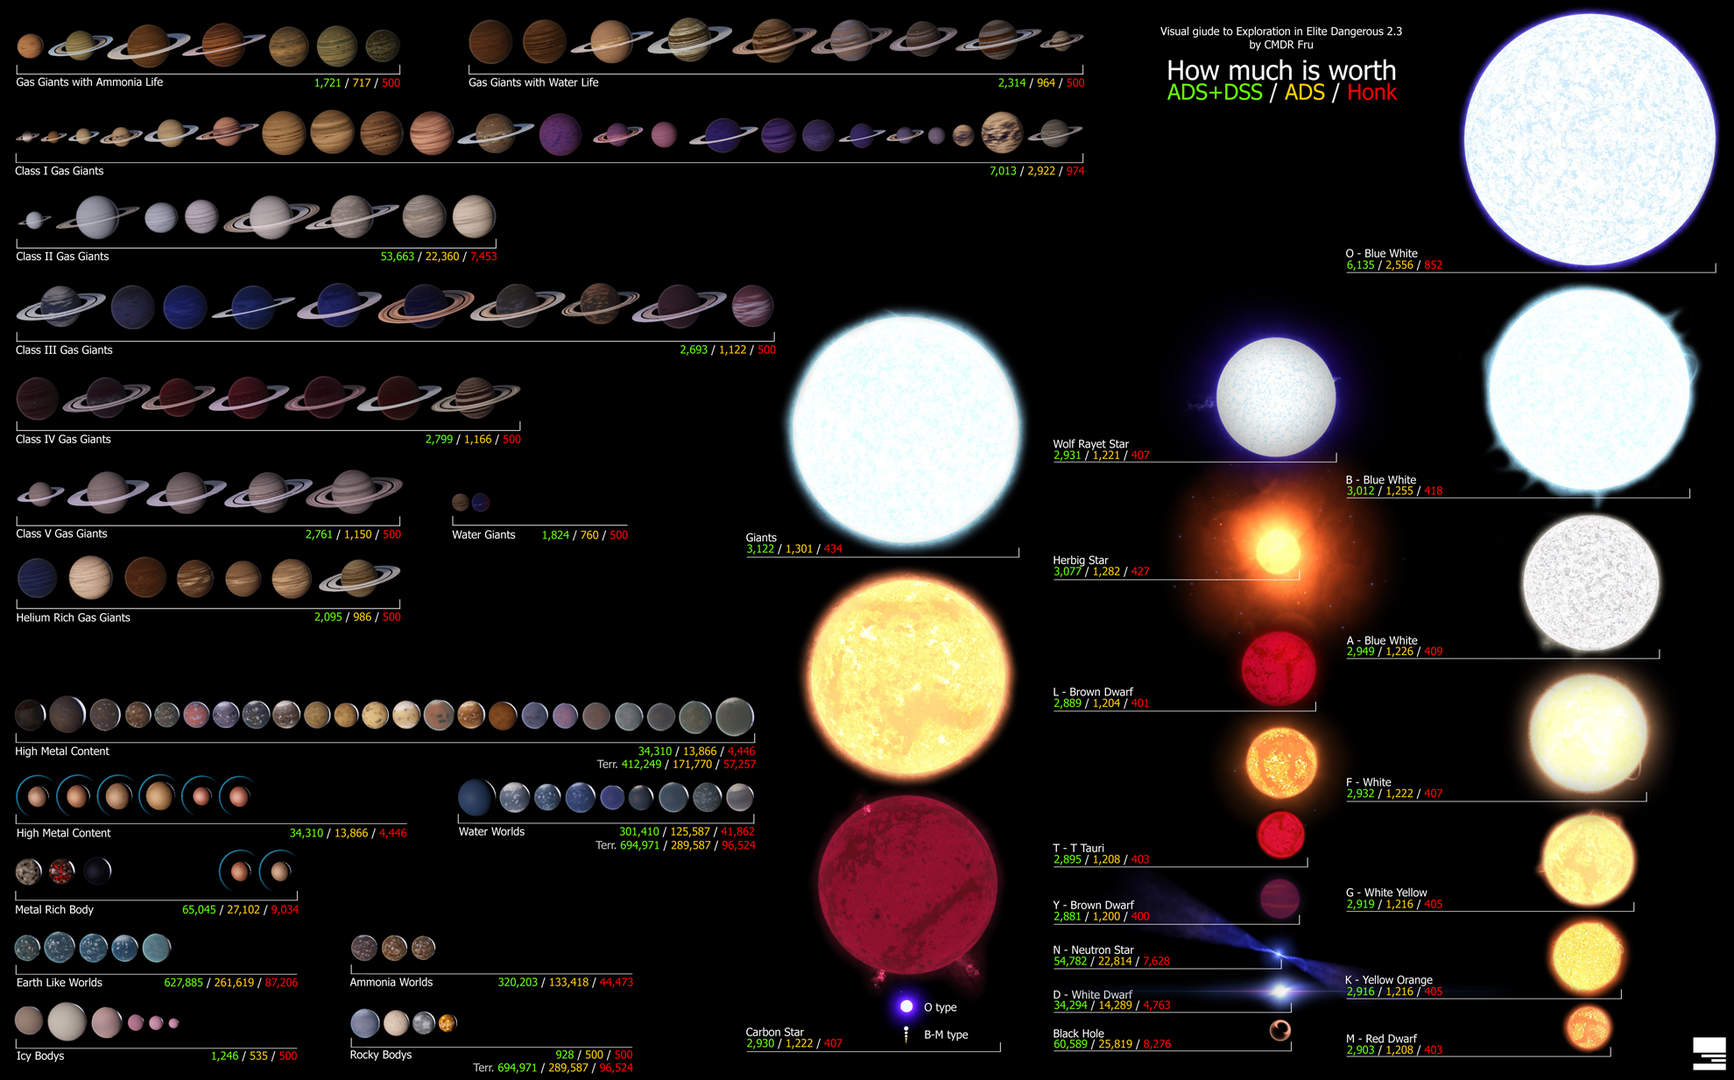 CMDR Fru's amazing ED Planet Scan Value Chart